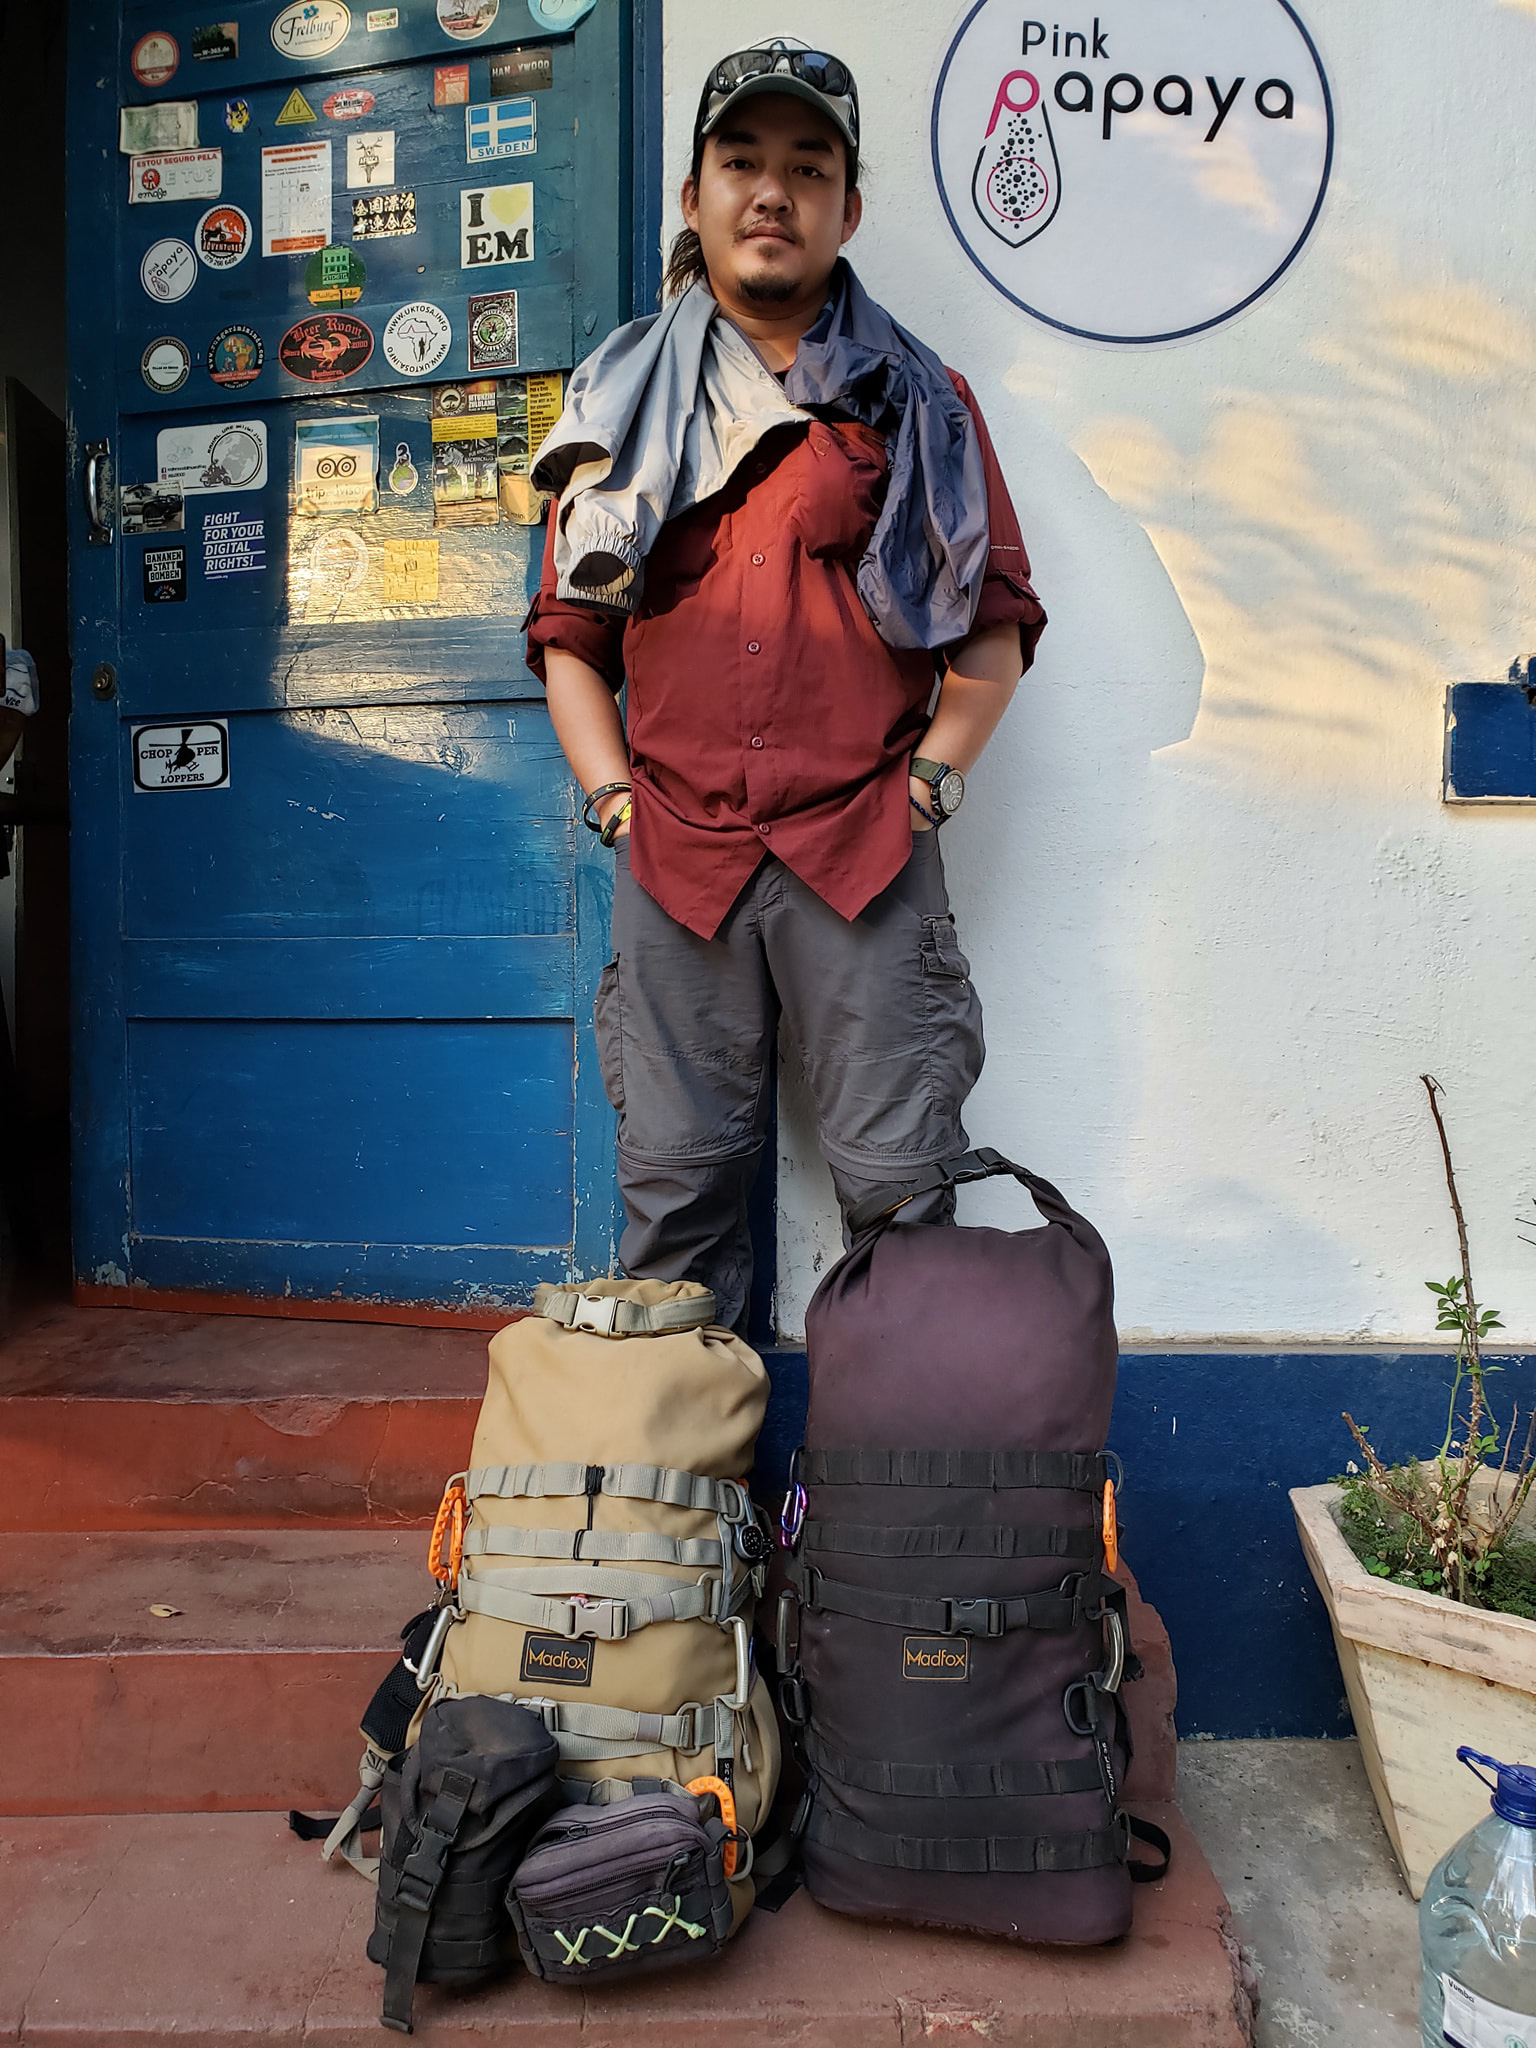 Vietnamese globetrotter Tran Dang Dang Khoa stands beside his two big backpacks before a flight back to Vietnam after over 1,000 days traveling the world, June 15, 2020 in this photo posted to his verified Facebook account.